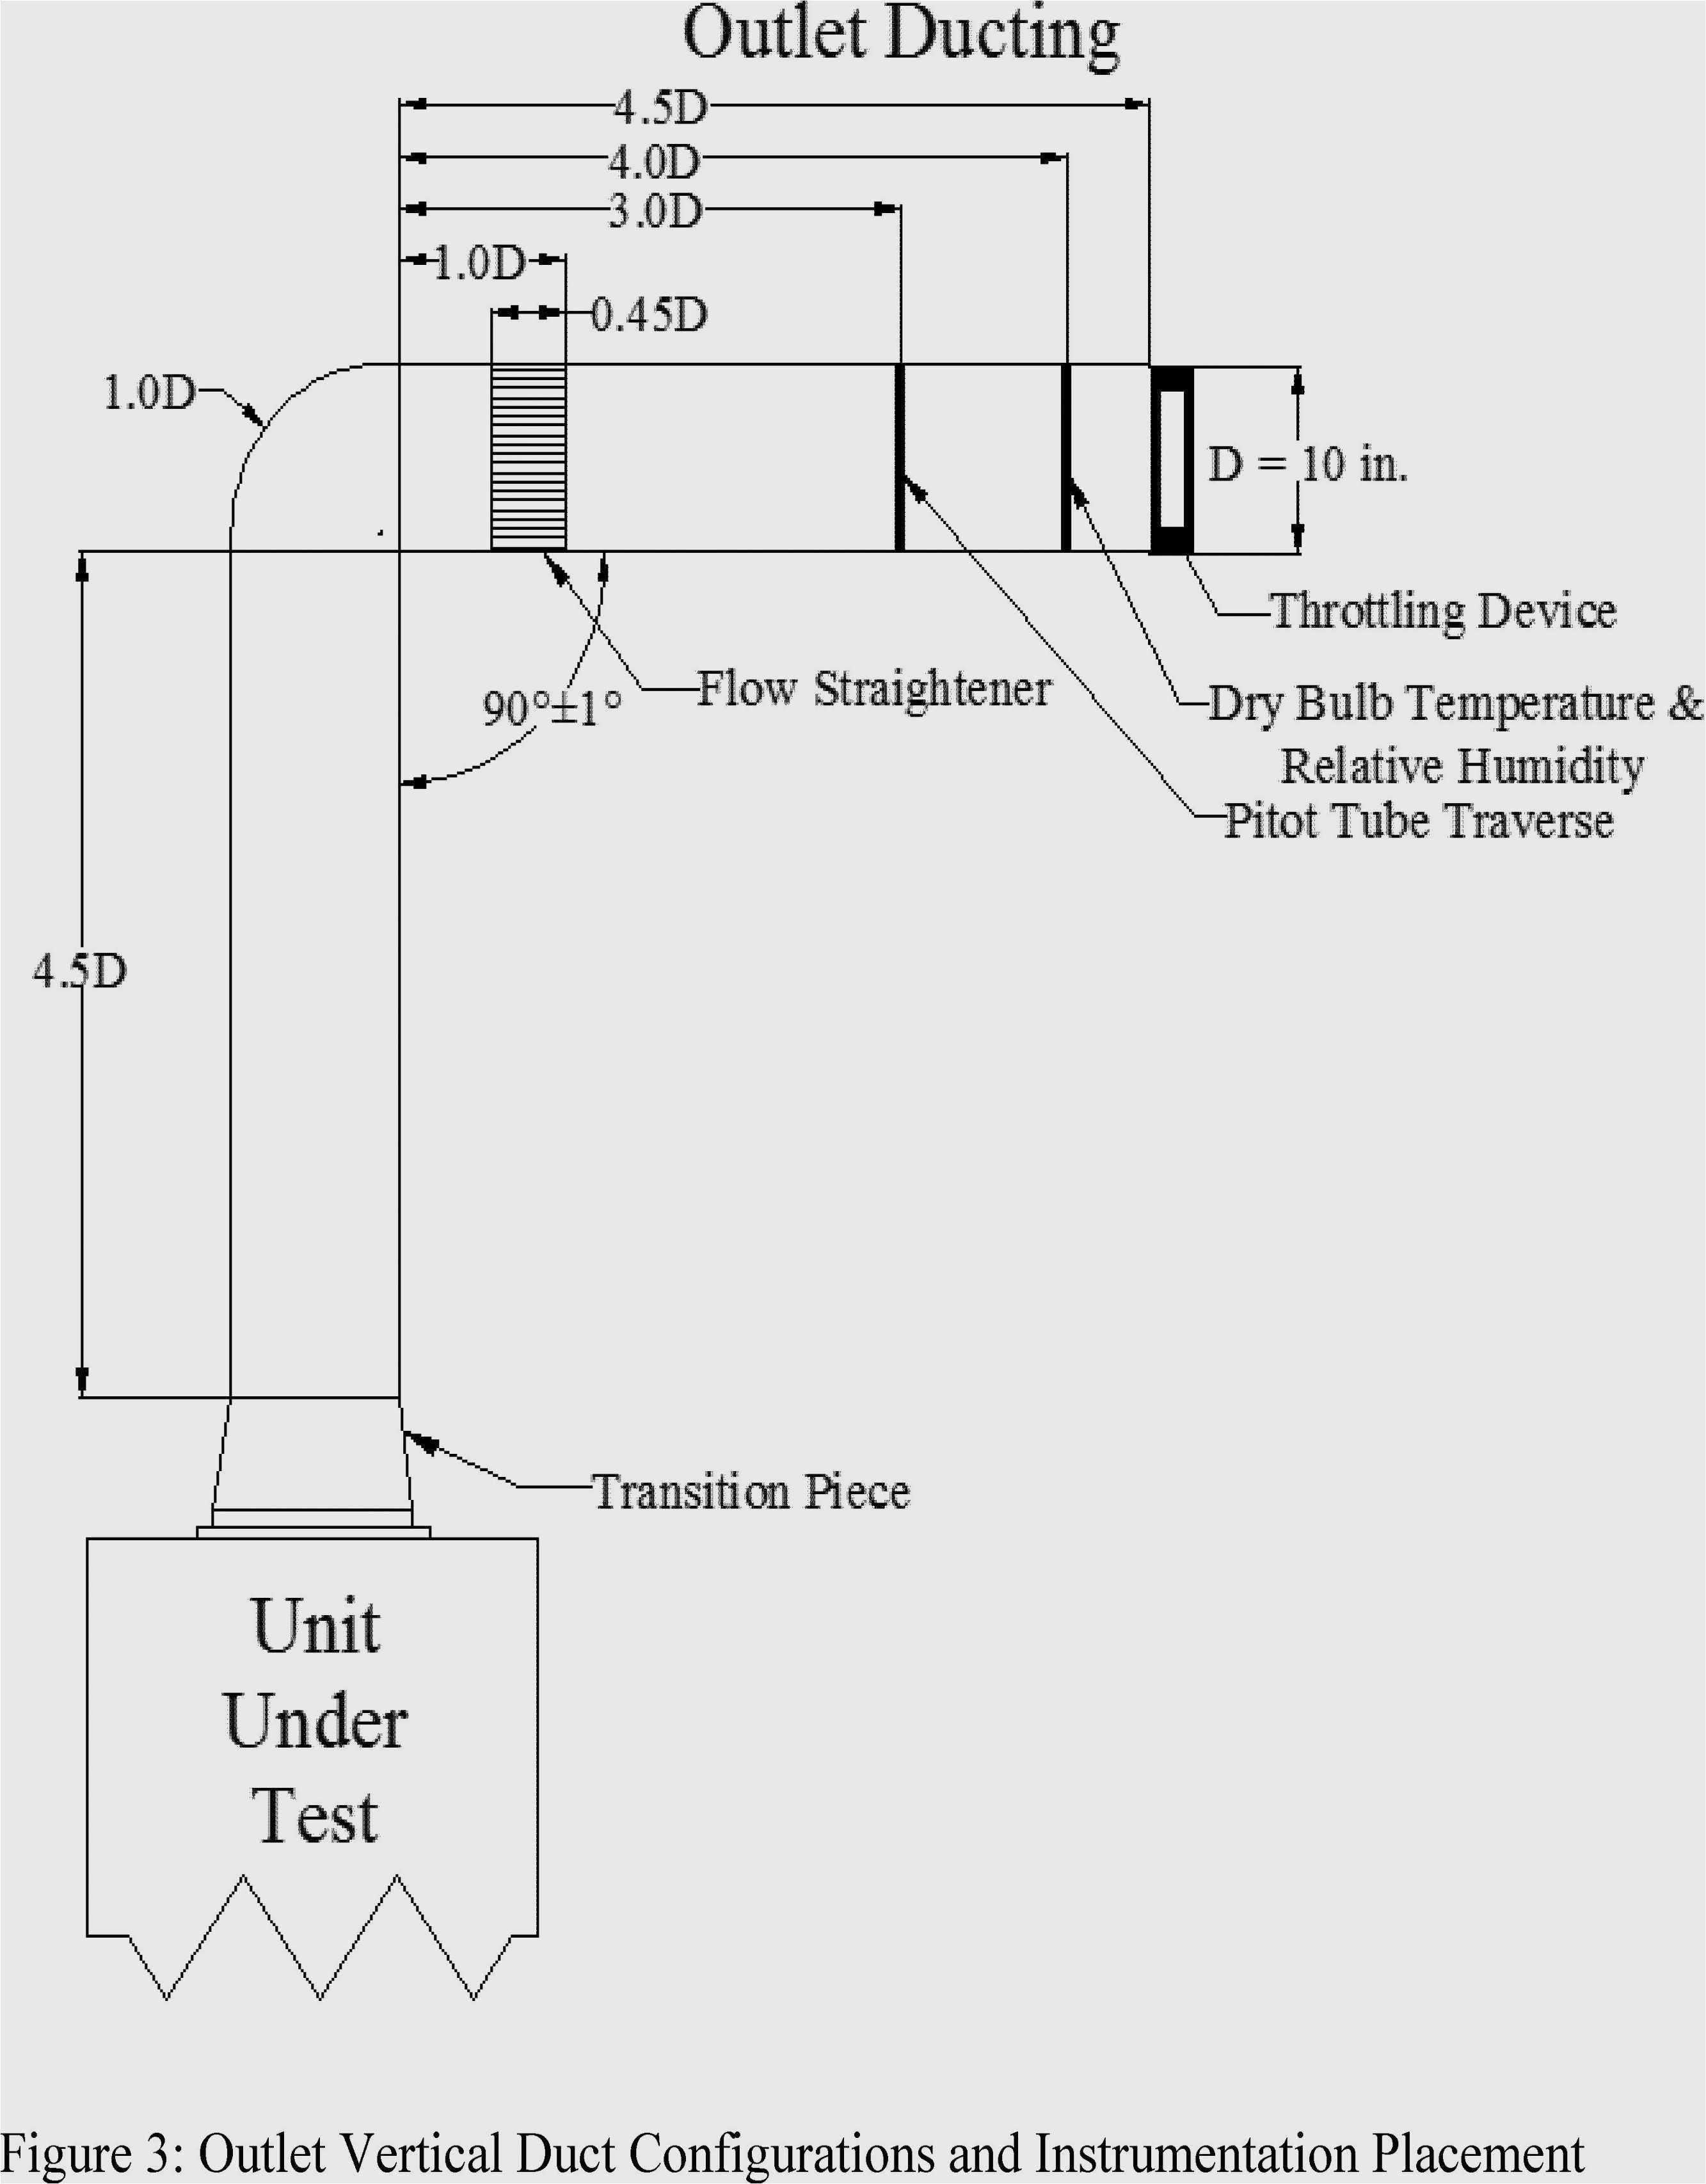 wiring multiple light switches luxury wiring diagram 3 way switch inspirational 3 way switch wiring of wiring multiple light switches jpg